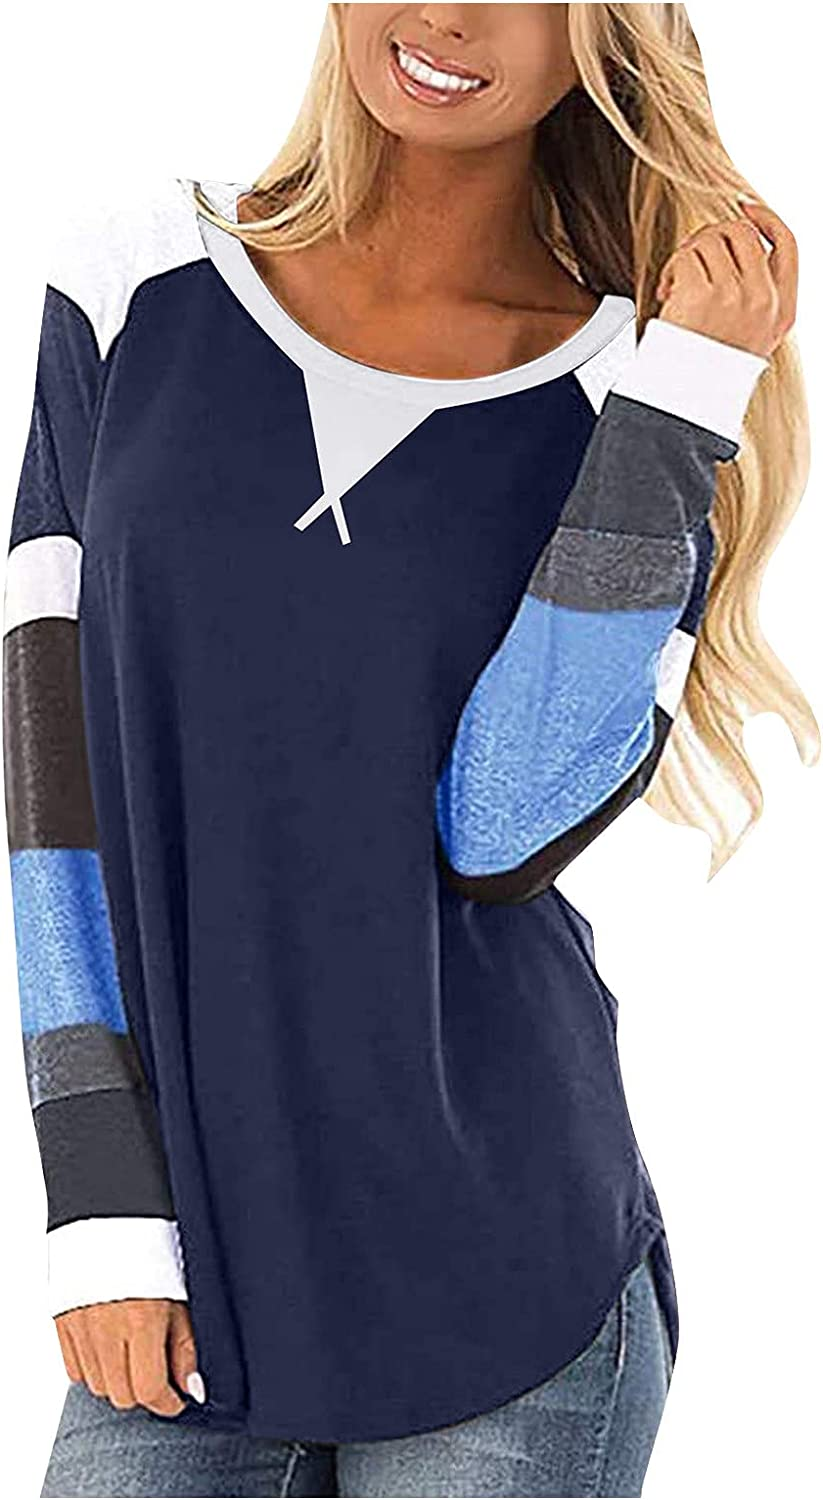 ONHUON Long Sleeve Blouses for Women Casual, Womens Color Block Round Neck Sweatshirts Tops Casual Top Shirts Blouse